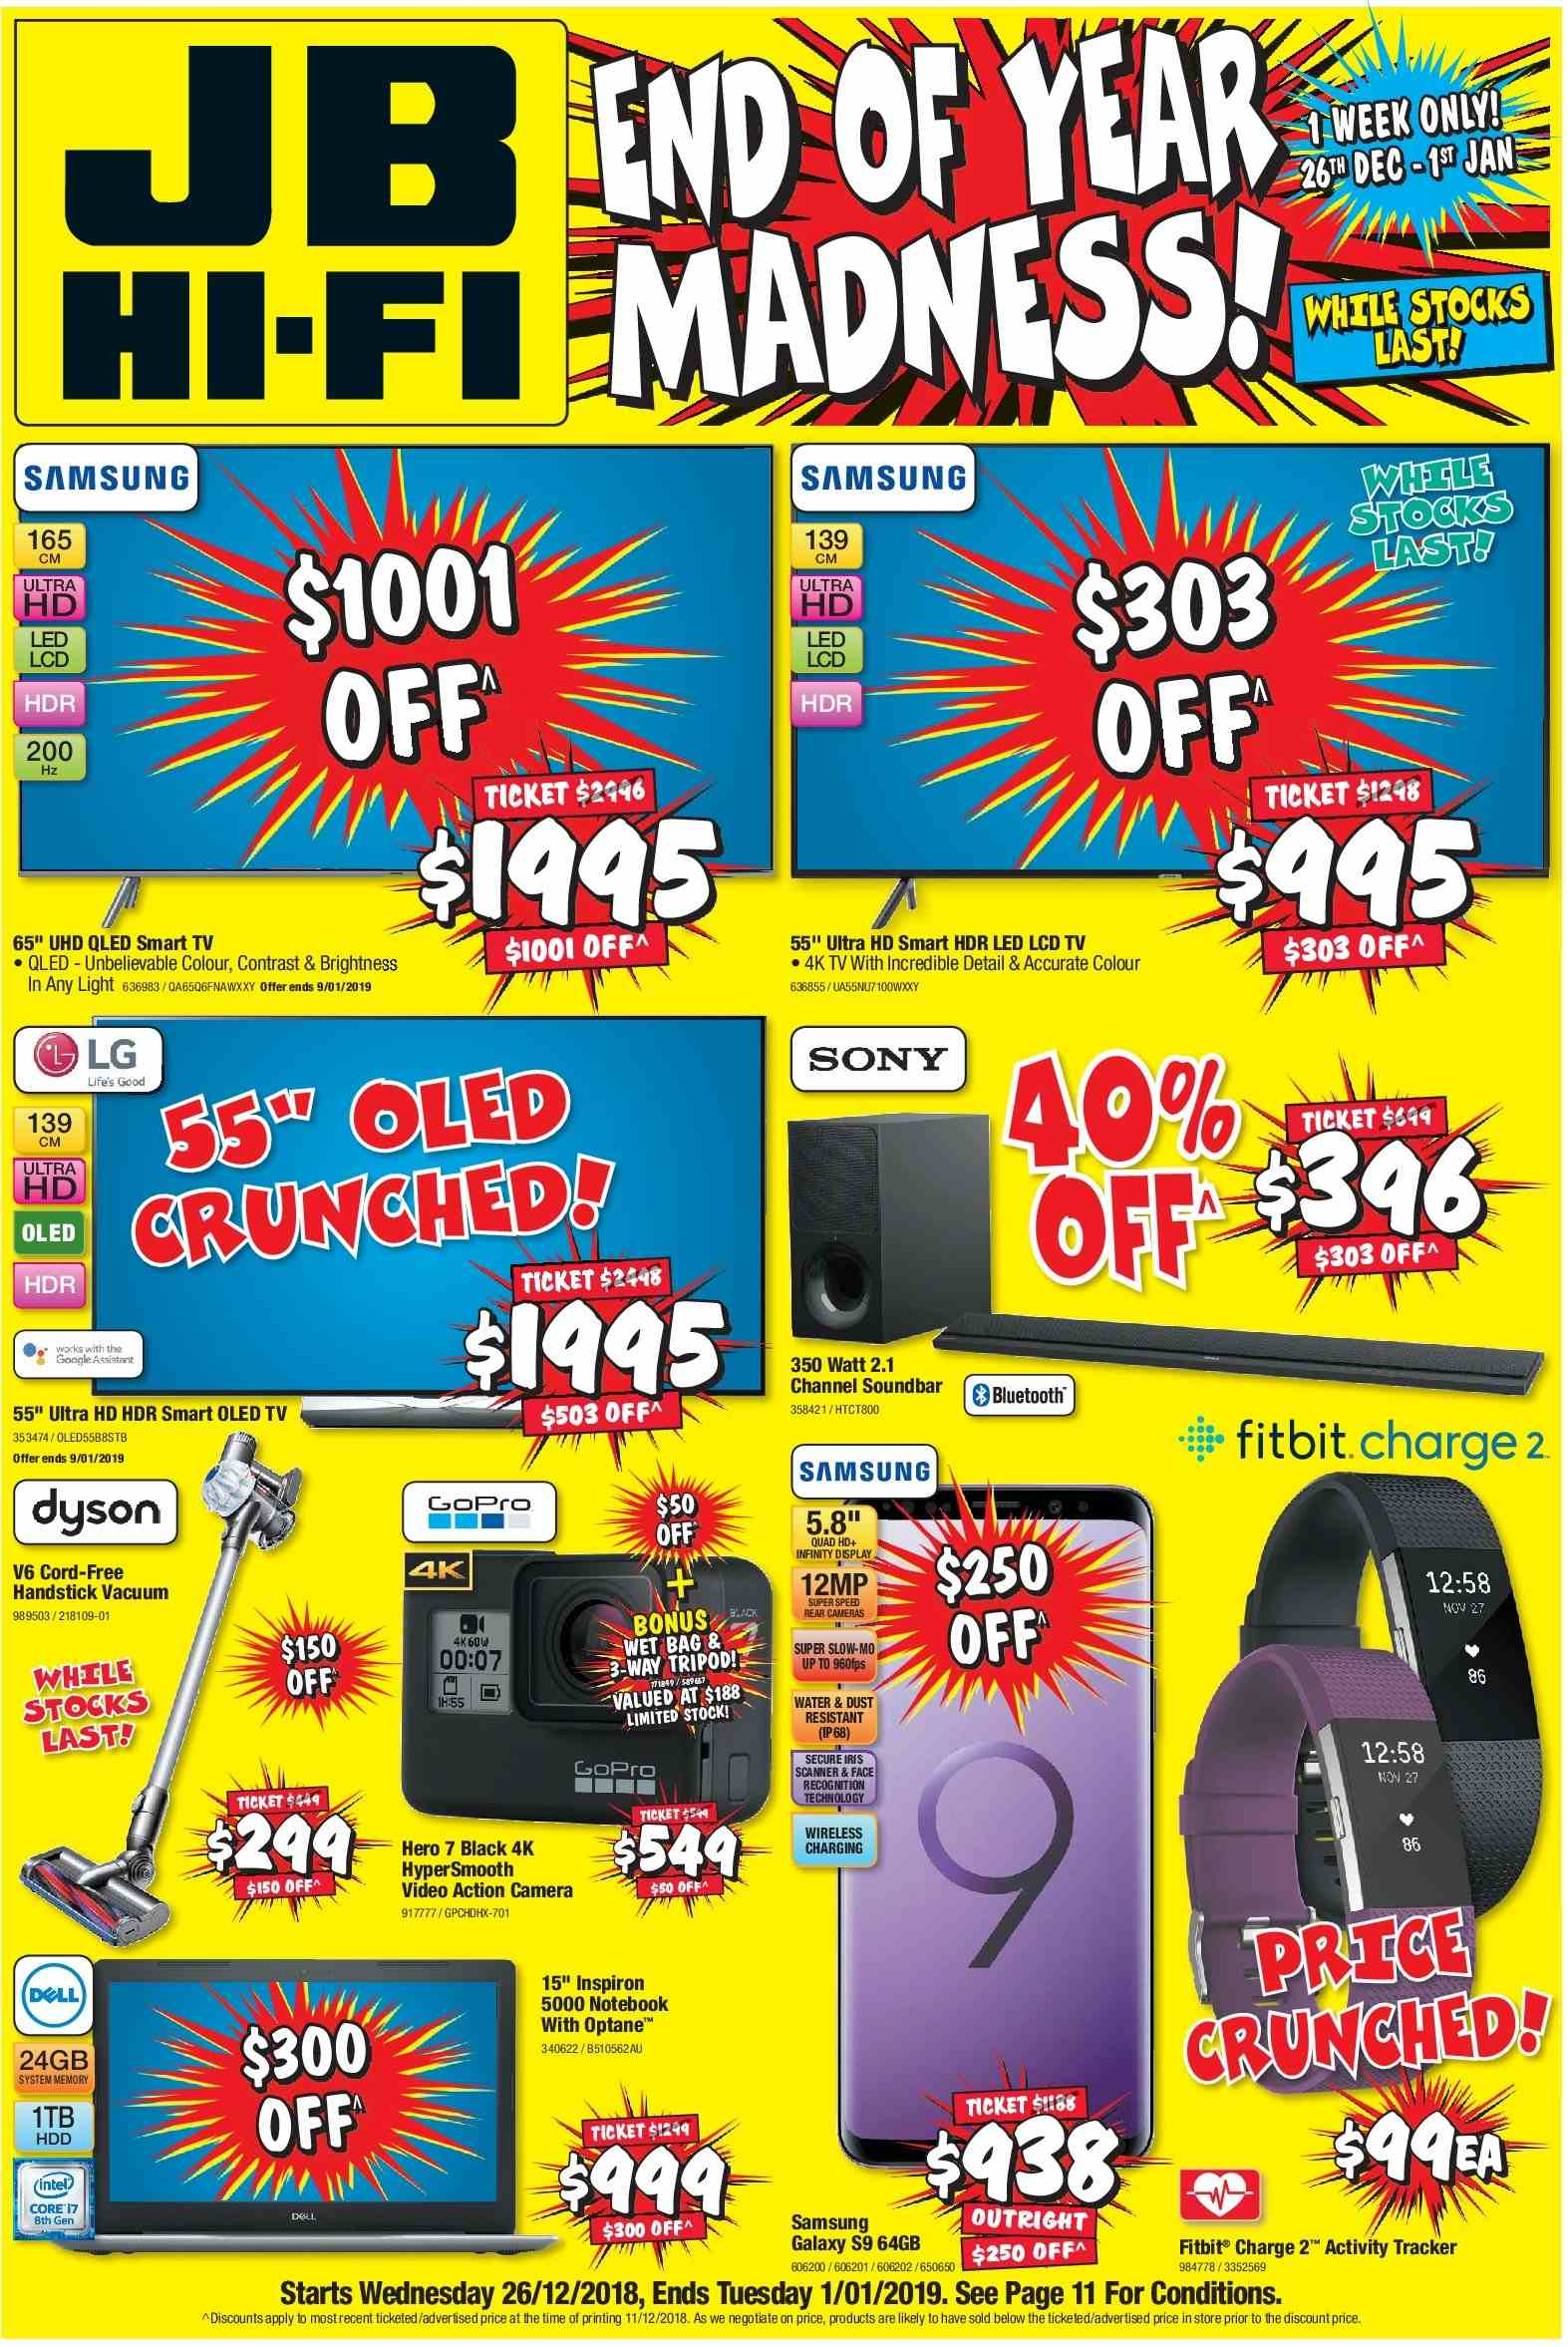 JB Hi-Fi Catalogue - 26.12.2018 - 1.1.2019 - Sales products - action camera, activity tracker, bluetooth, camera, fitbit, galaxy, google, gopro, lg, samsung, sony, soundbar, tripod, uhd tv, ultra hd, vacuum, hdd, channel, notebook, water, wireless, dyson. Page 1.